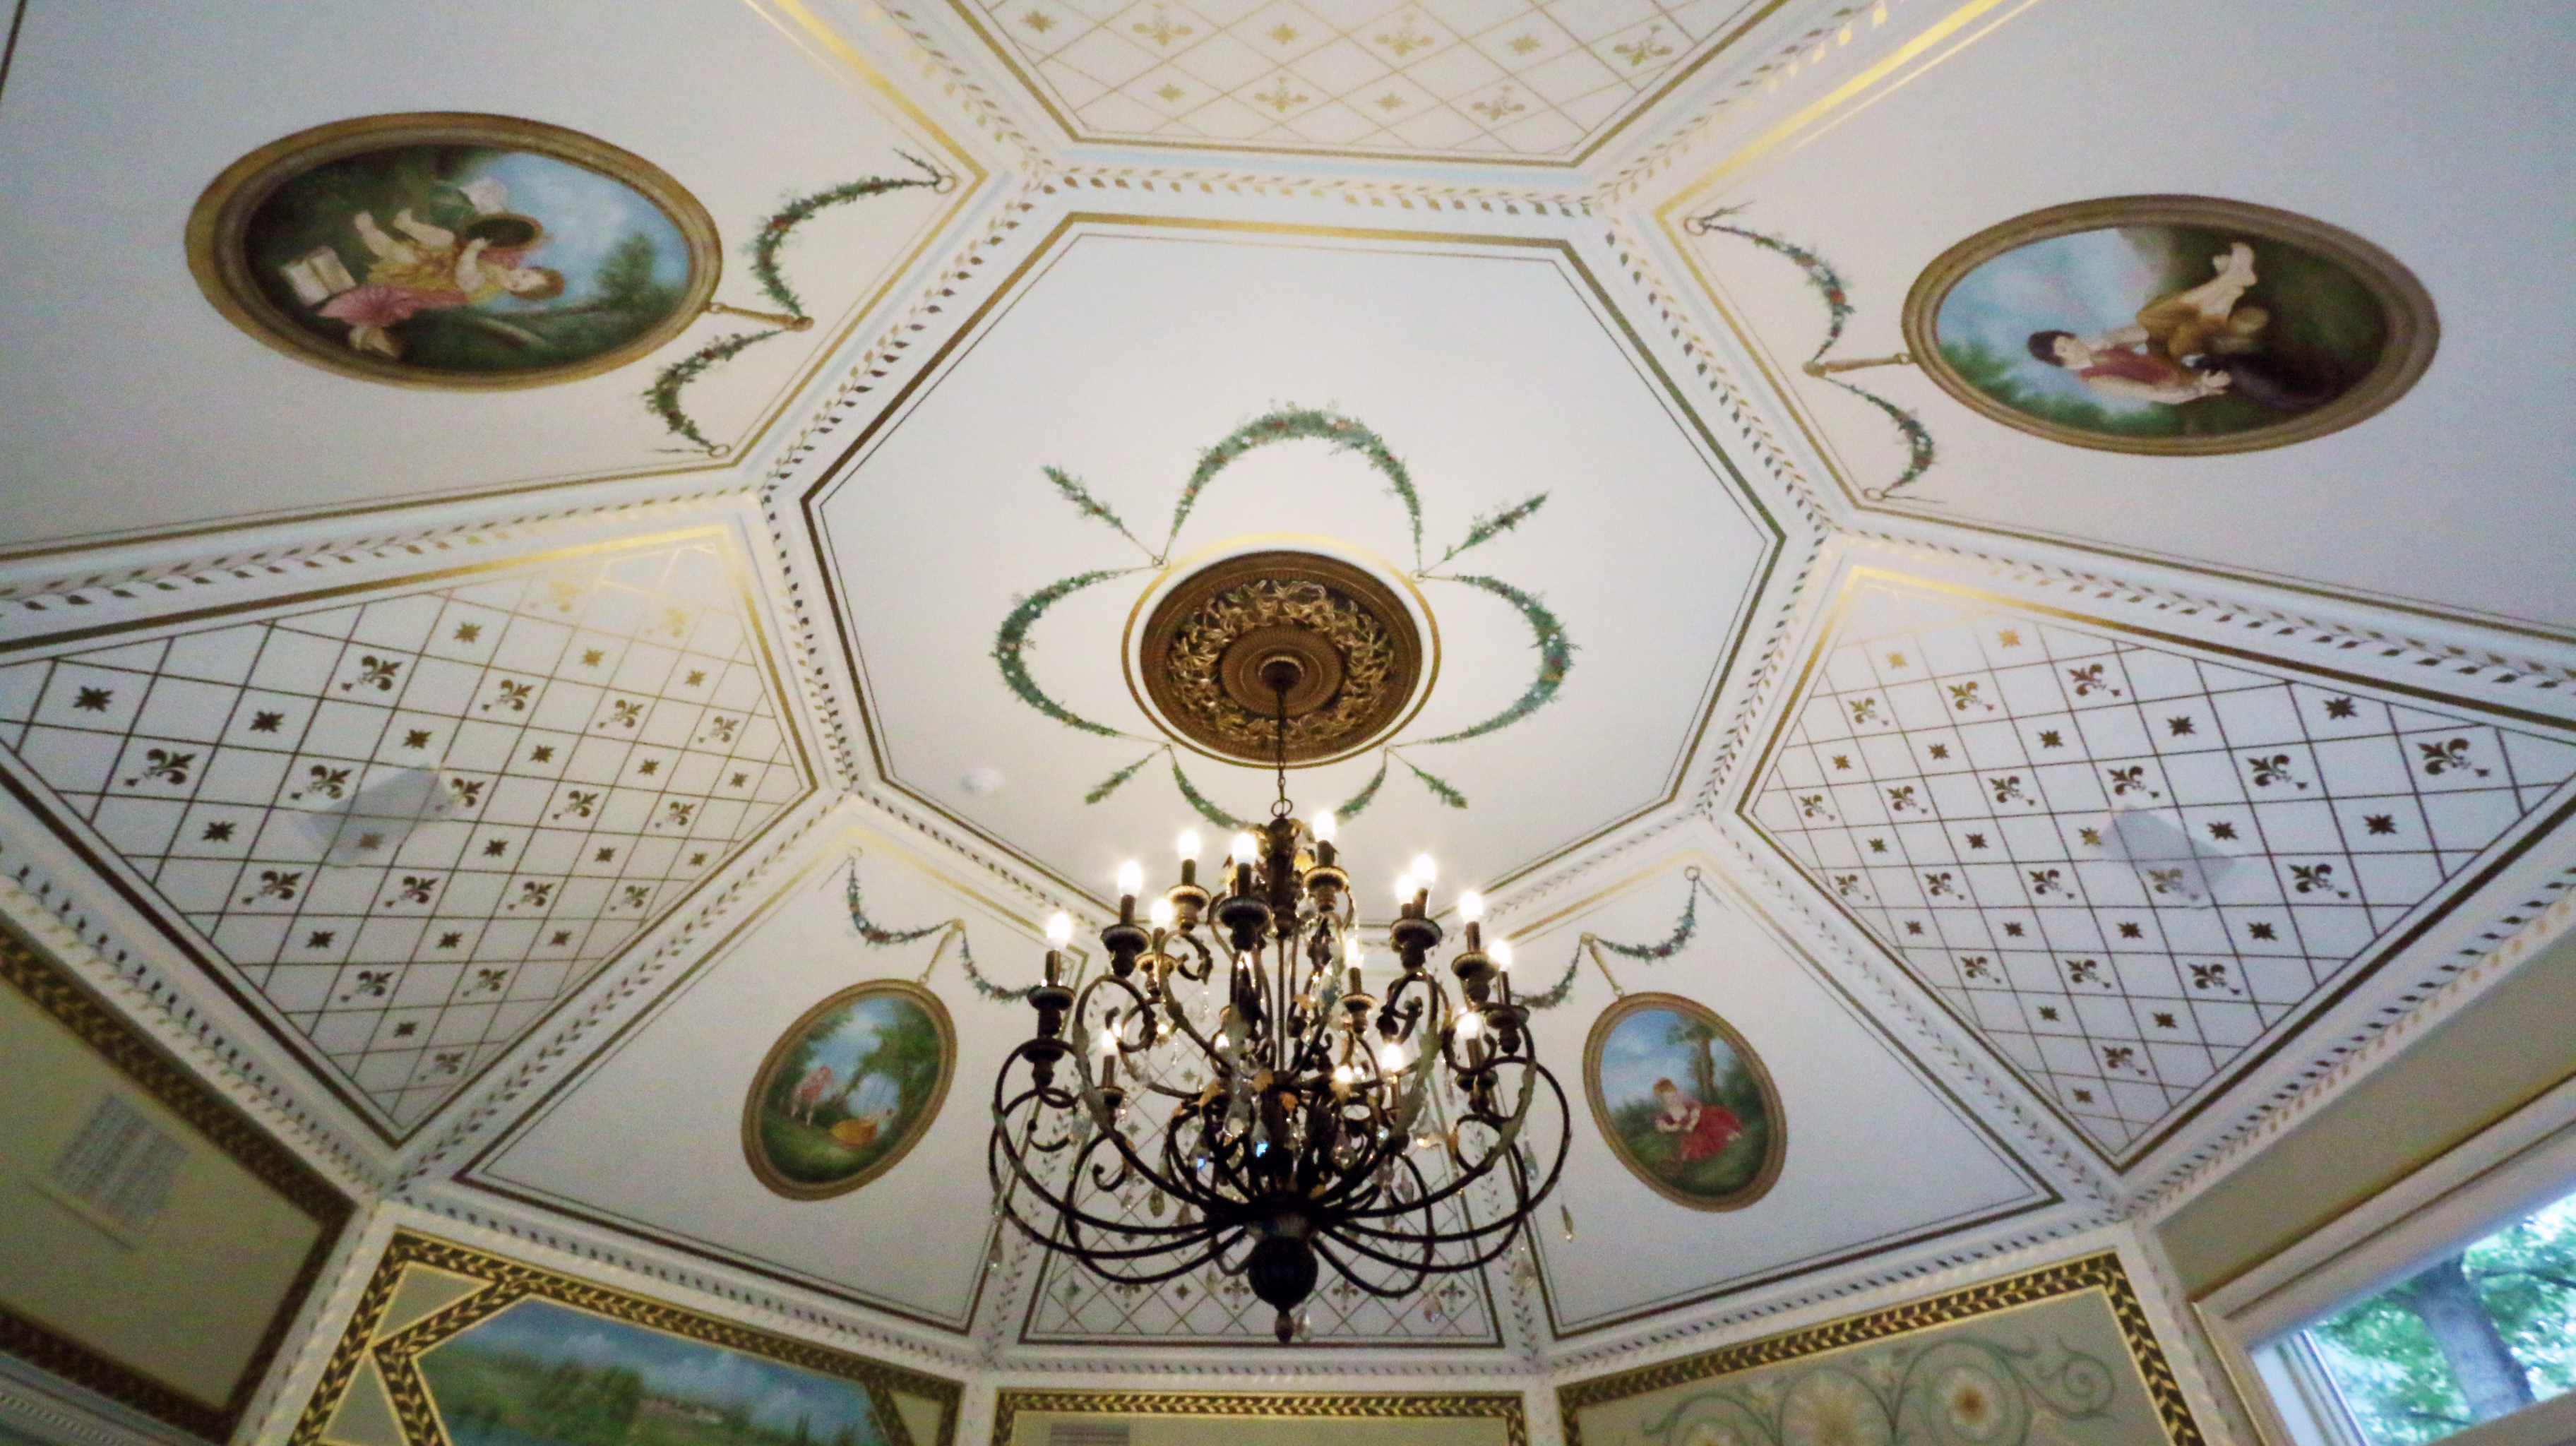 Mural and Ceiling Franklin Lakes NJ